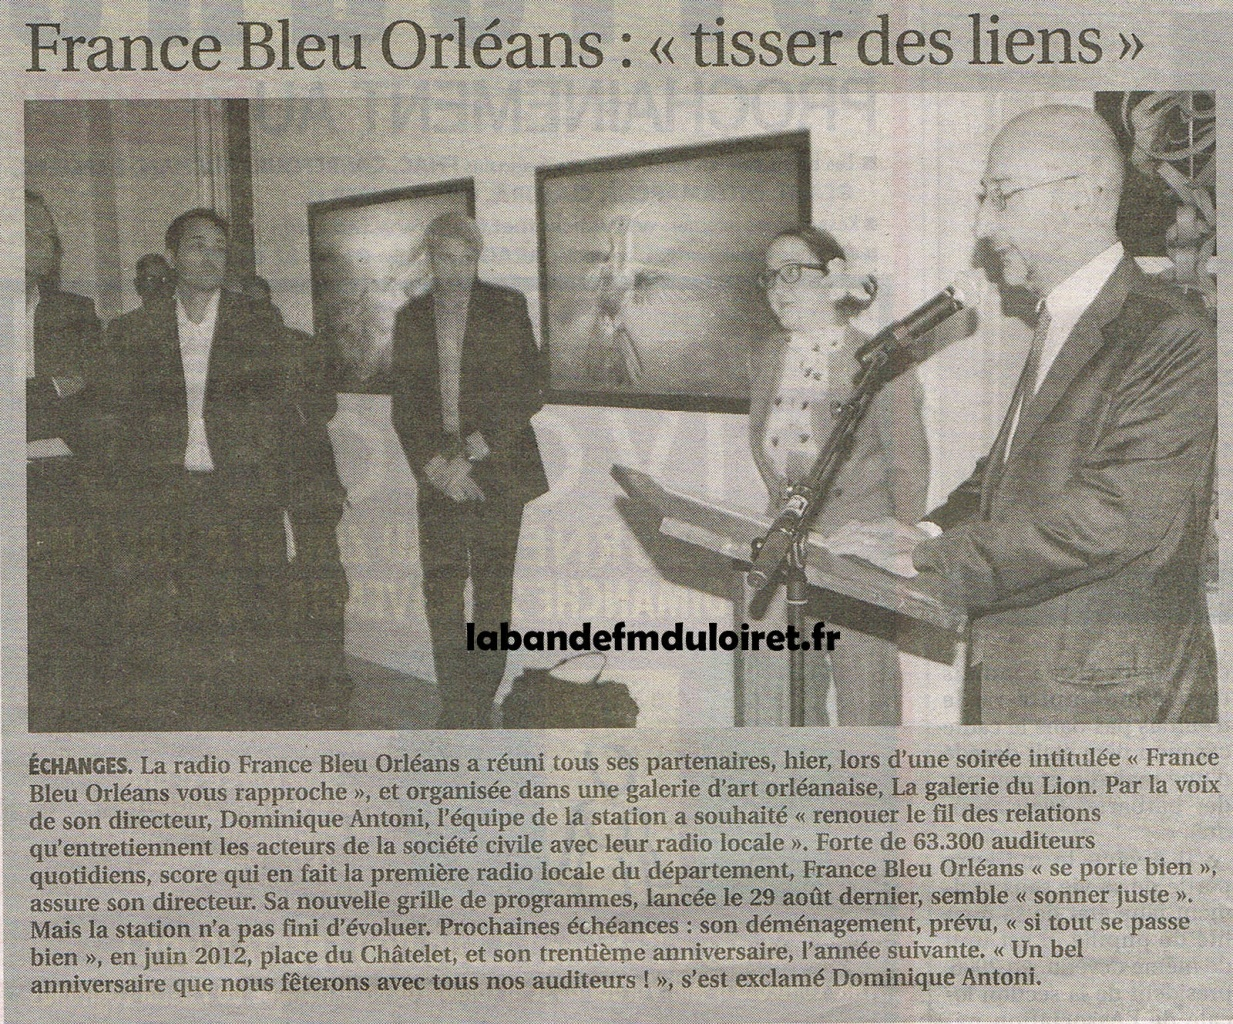 article de presse 6 nov. 2011